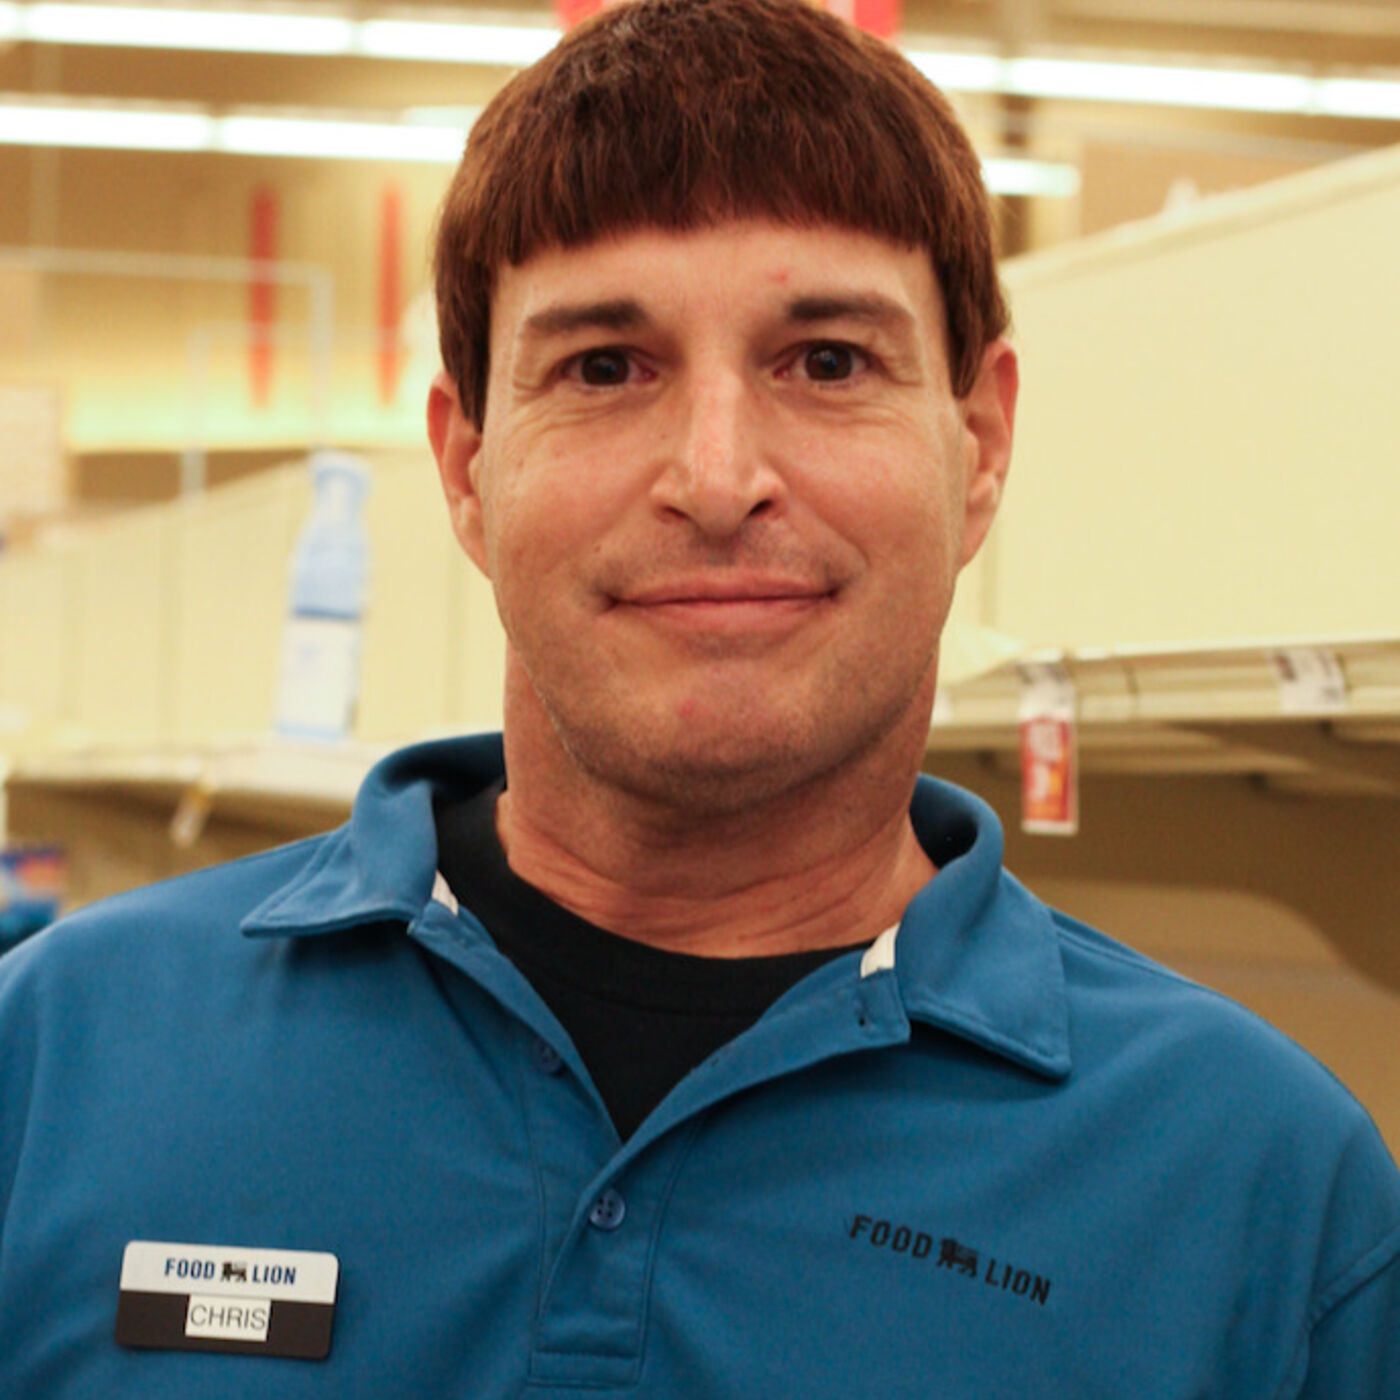 Grocery Store Clerk Discusses Progression of COVID-19